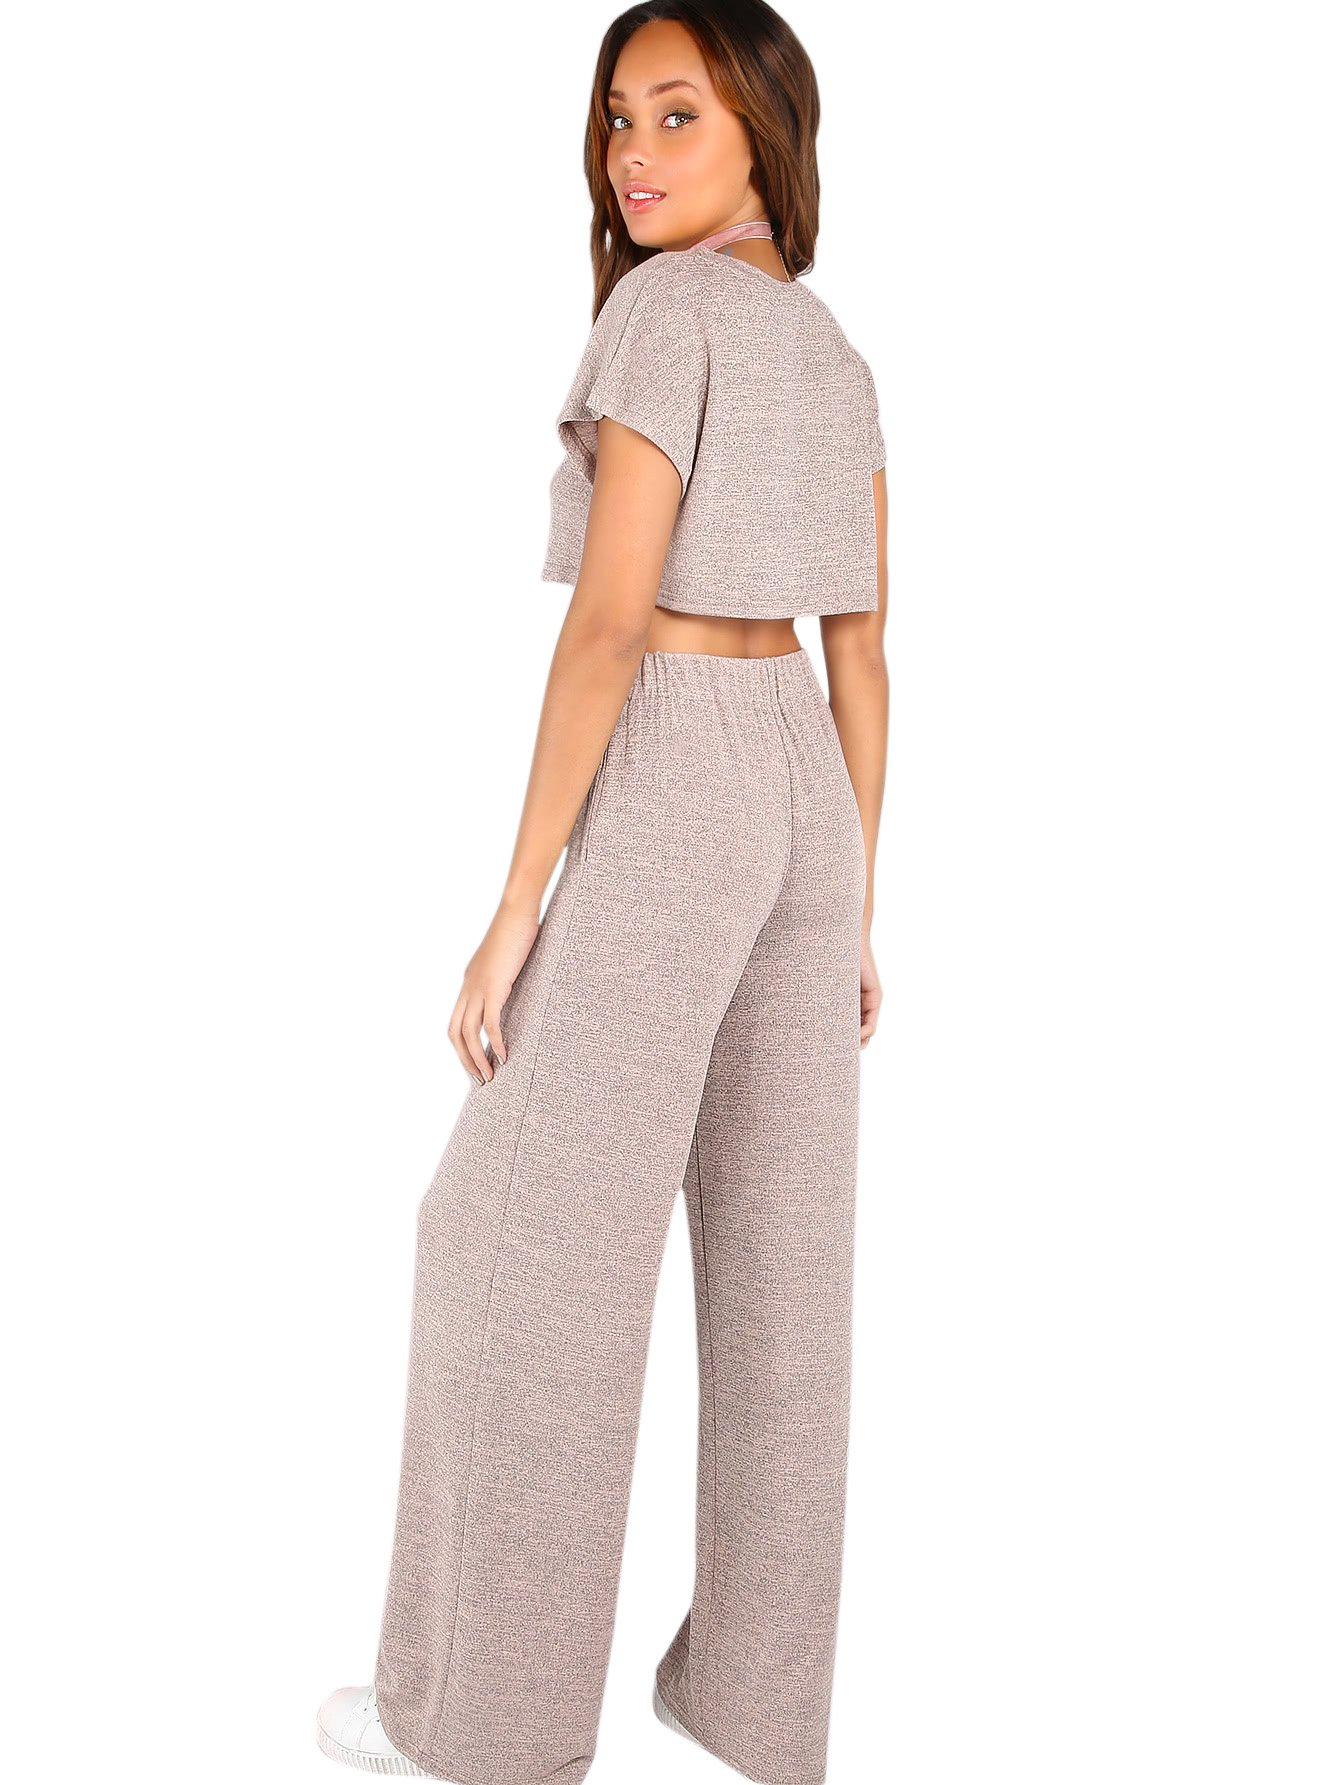 Verdusa Women's Sporty 2 Pieces Sets Loose Crop Top and Wide Leg Pants Blush L by Verdusa (Image #2)